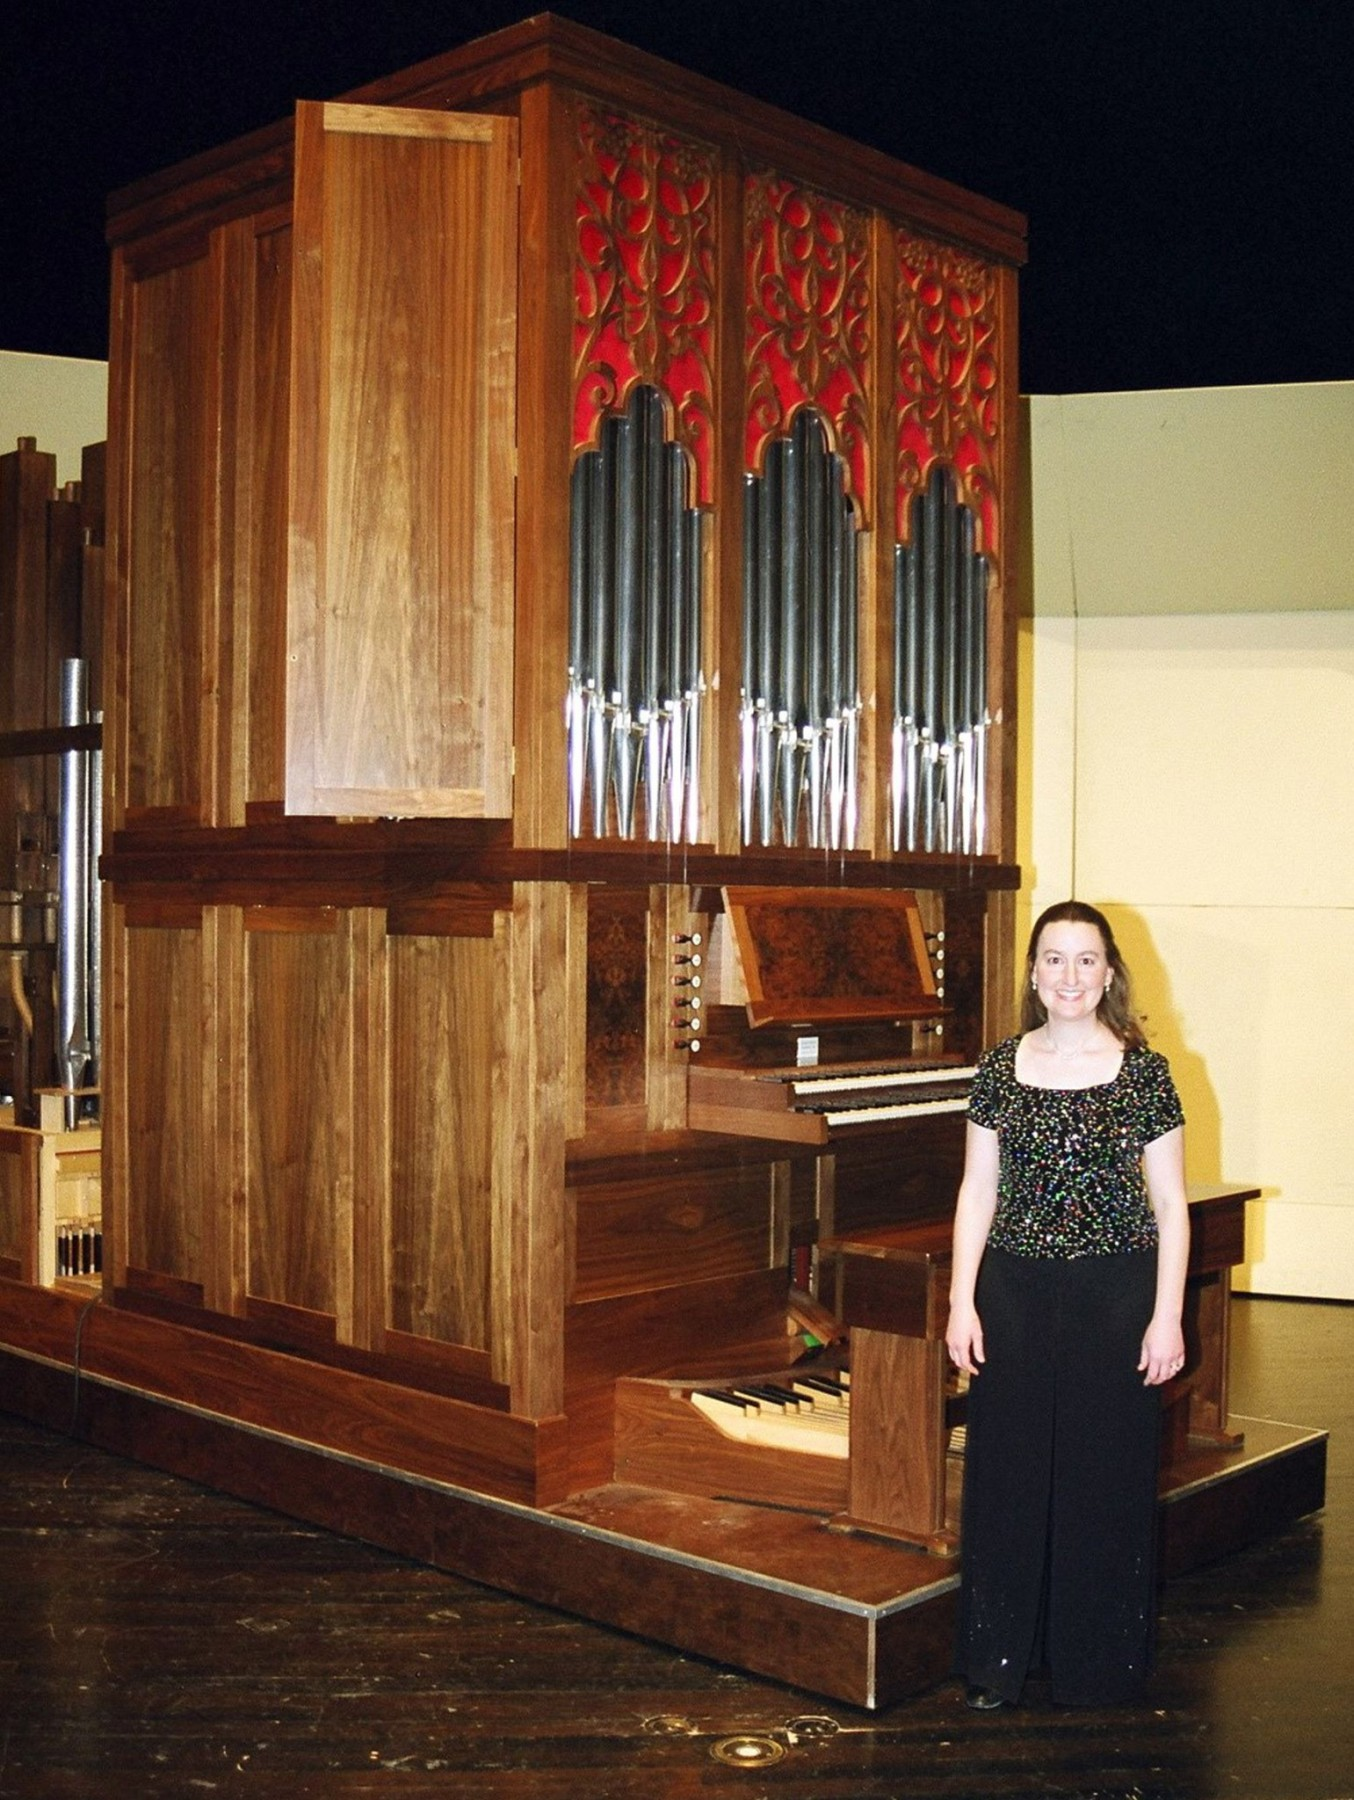 Dr. Lara Walter West will perform a recital on Tarleton's Waggener Memorial Pipe Organ, Jan. 21 in the Clyde H. Wells Fine Arts Center auditorium.